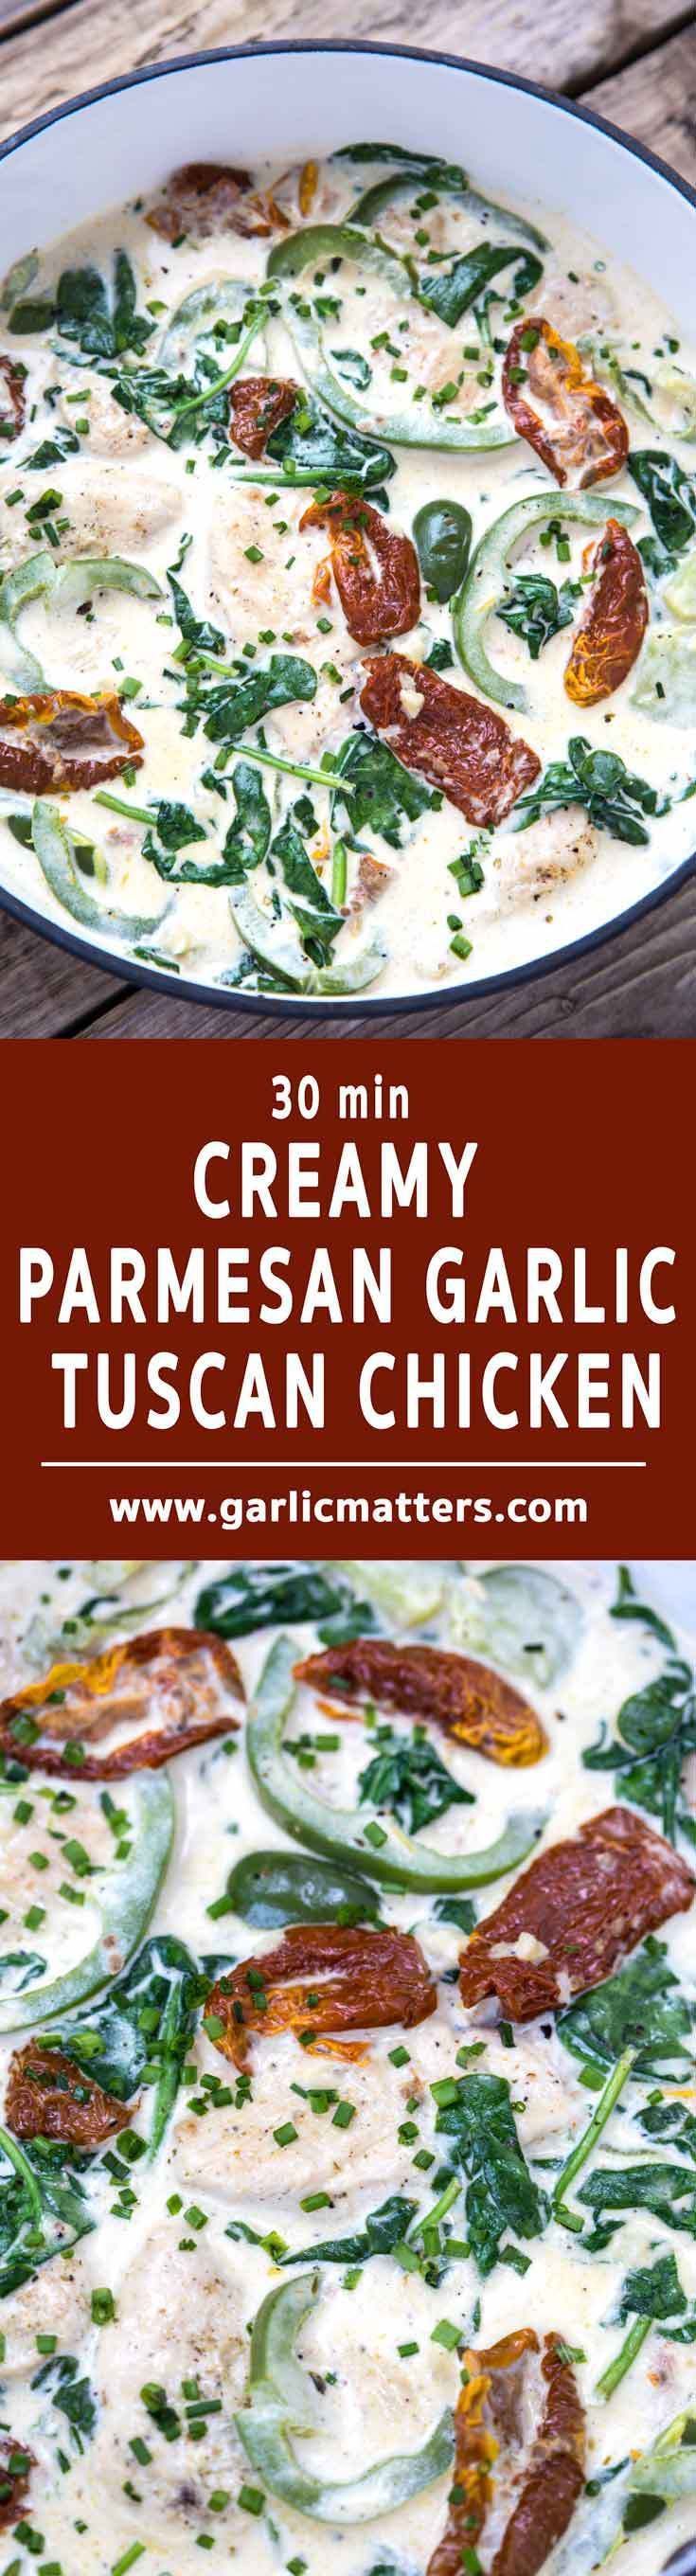 30 min Creamy Tuscan Parmesan Garlic Chicken Recipe is my family's favorite - perfect for lunch or dinner with pasta or couscous.